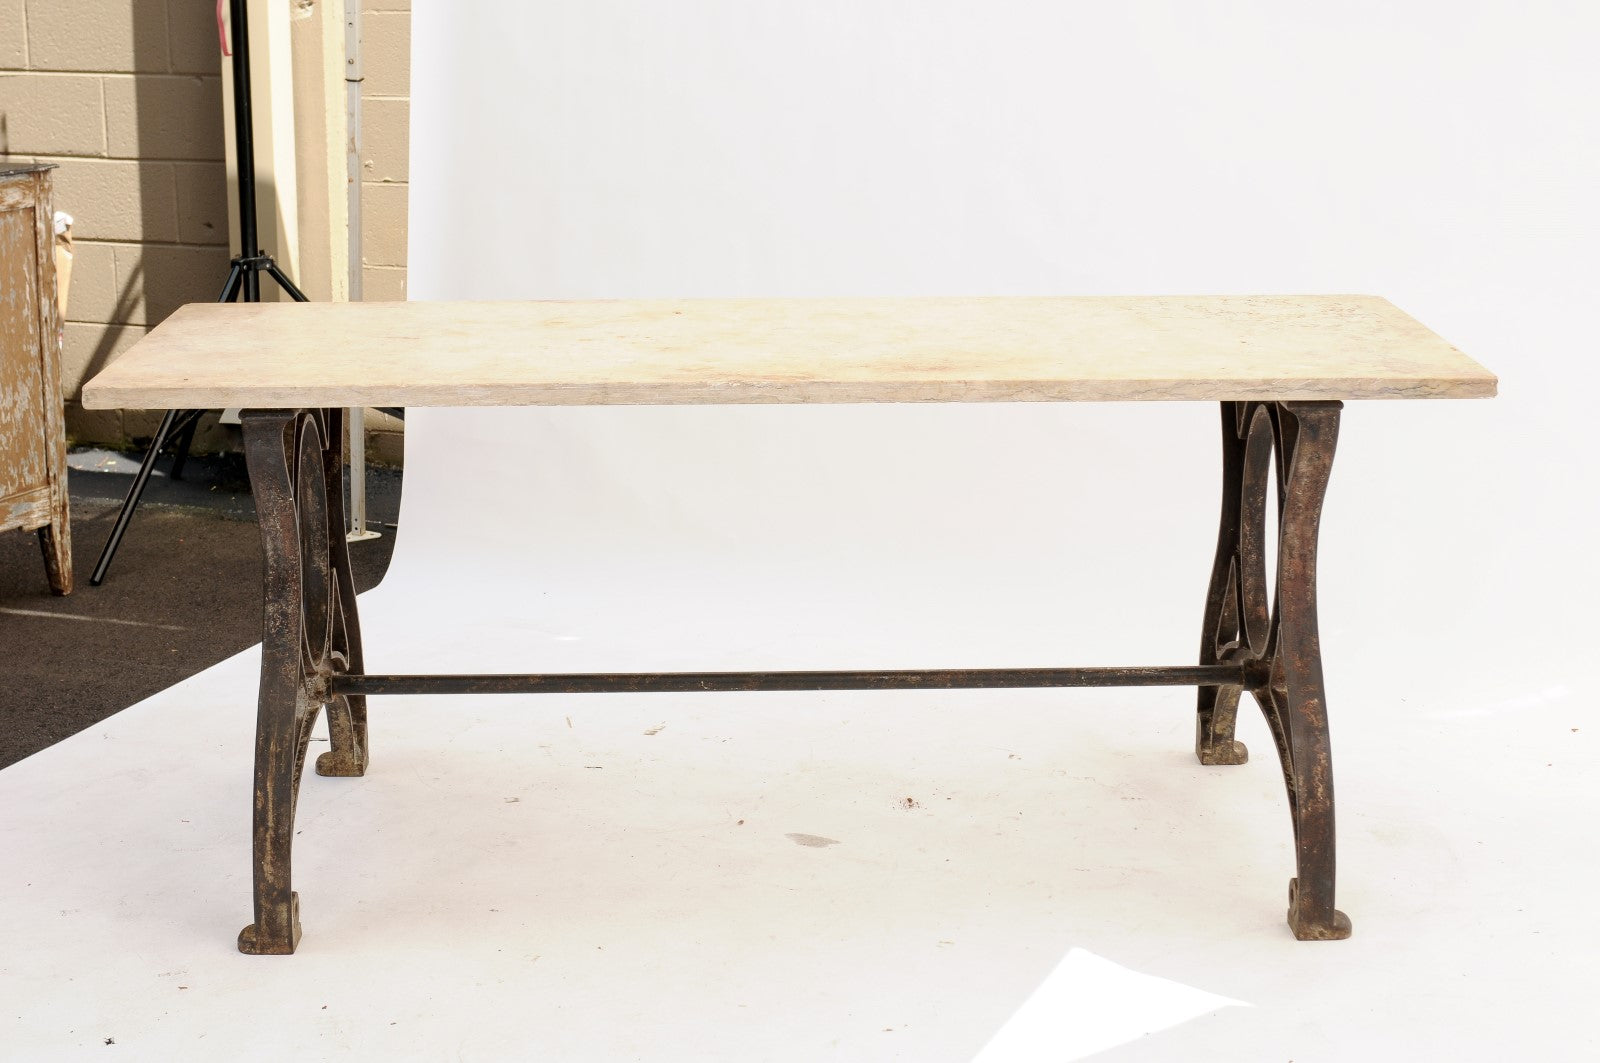 1940s Industrial Southern French Iron And Stone Trestle Dining Room Table